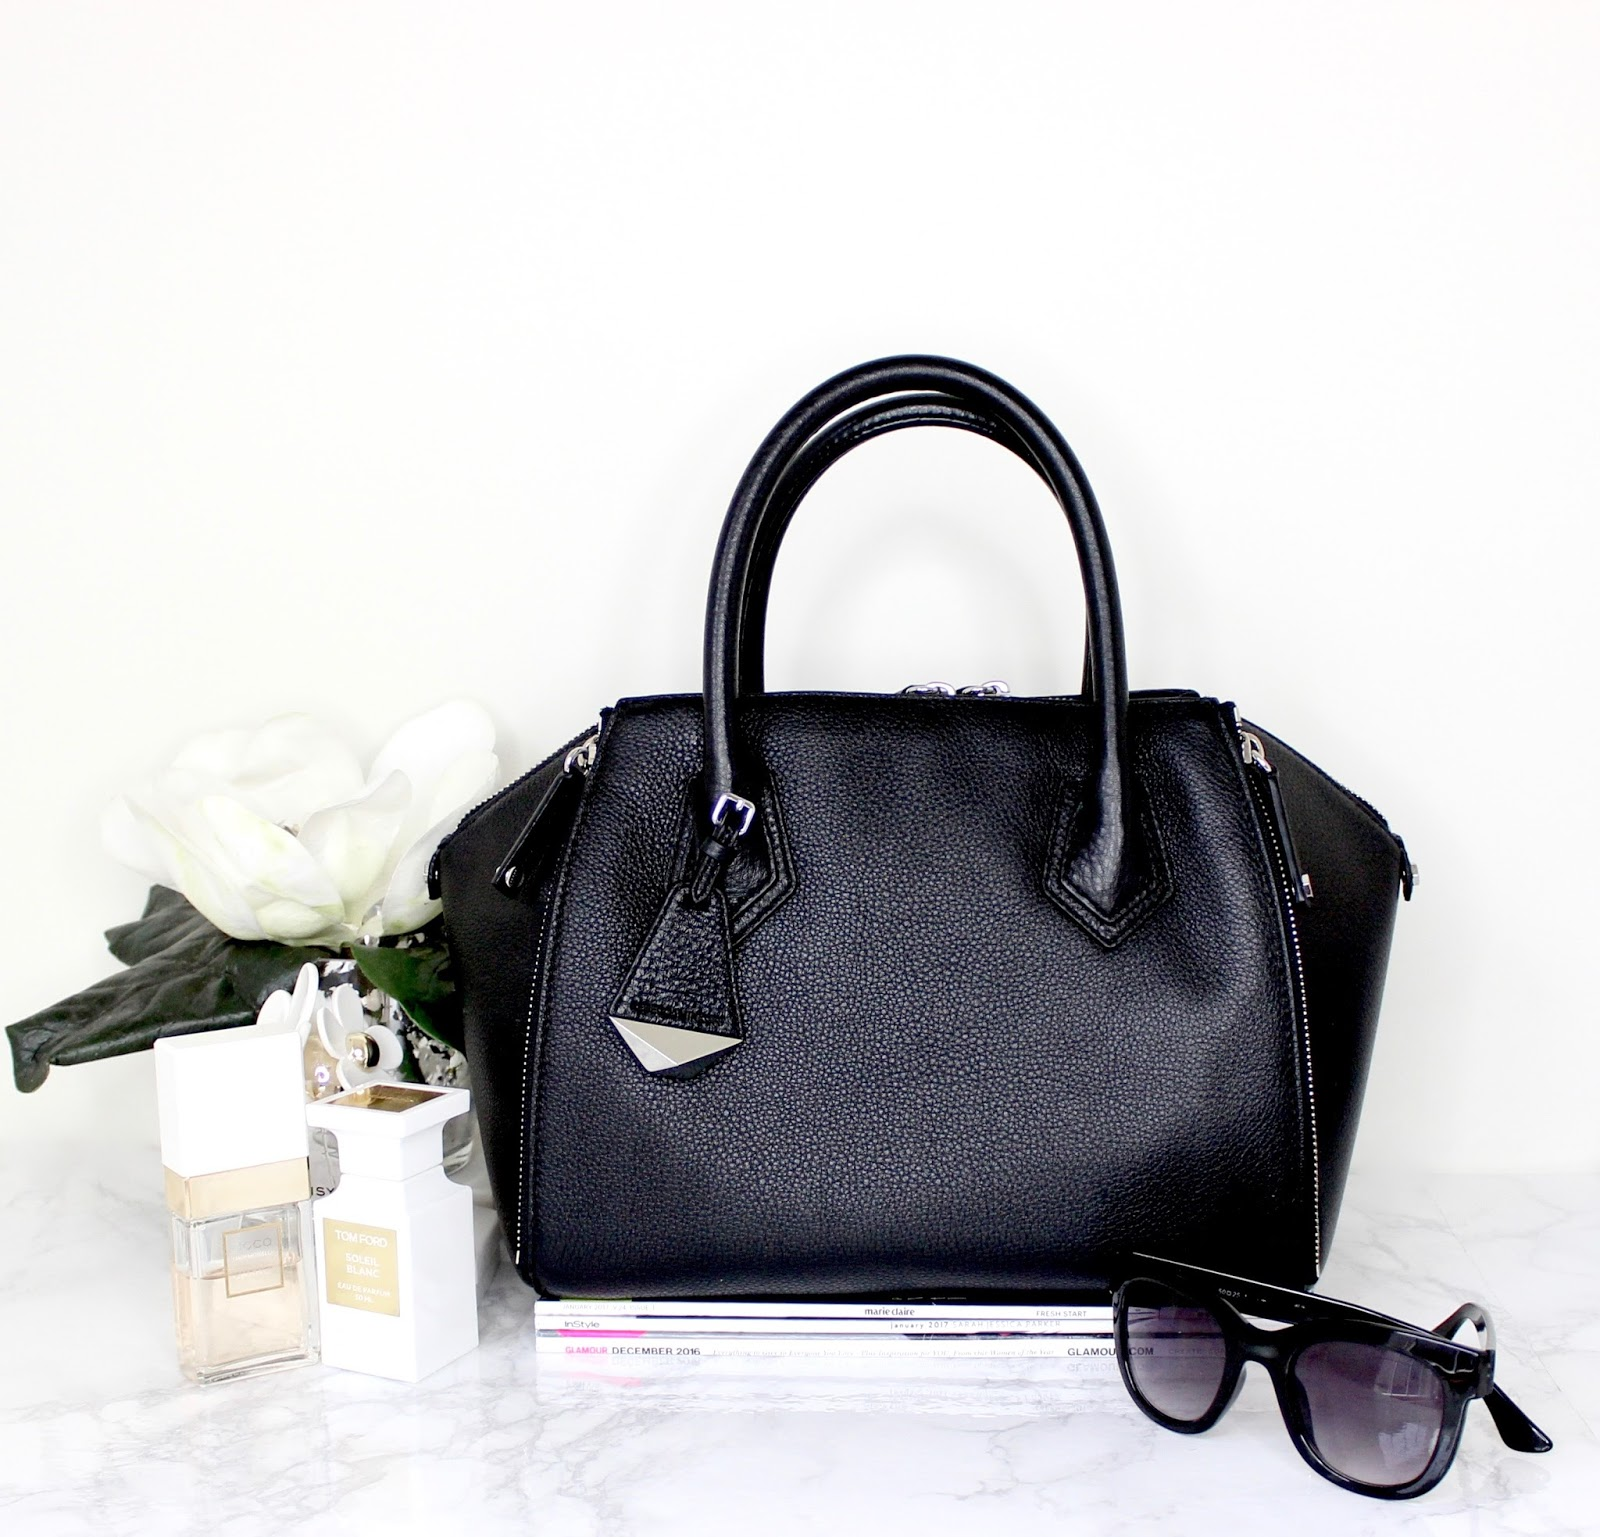 What's In My Handbag (Rebecca Minkoff Perry Satchel Bag) || Winter-Edition || #blogmas Day 9